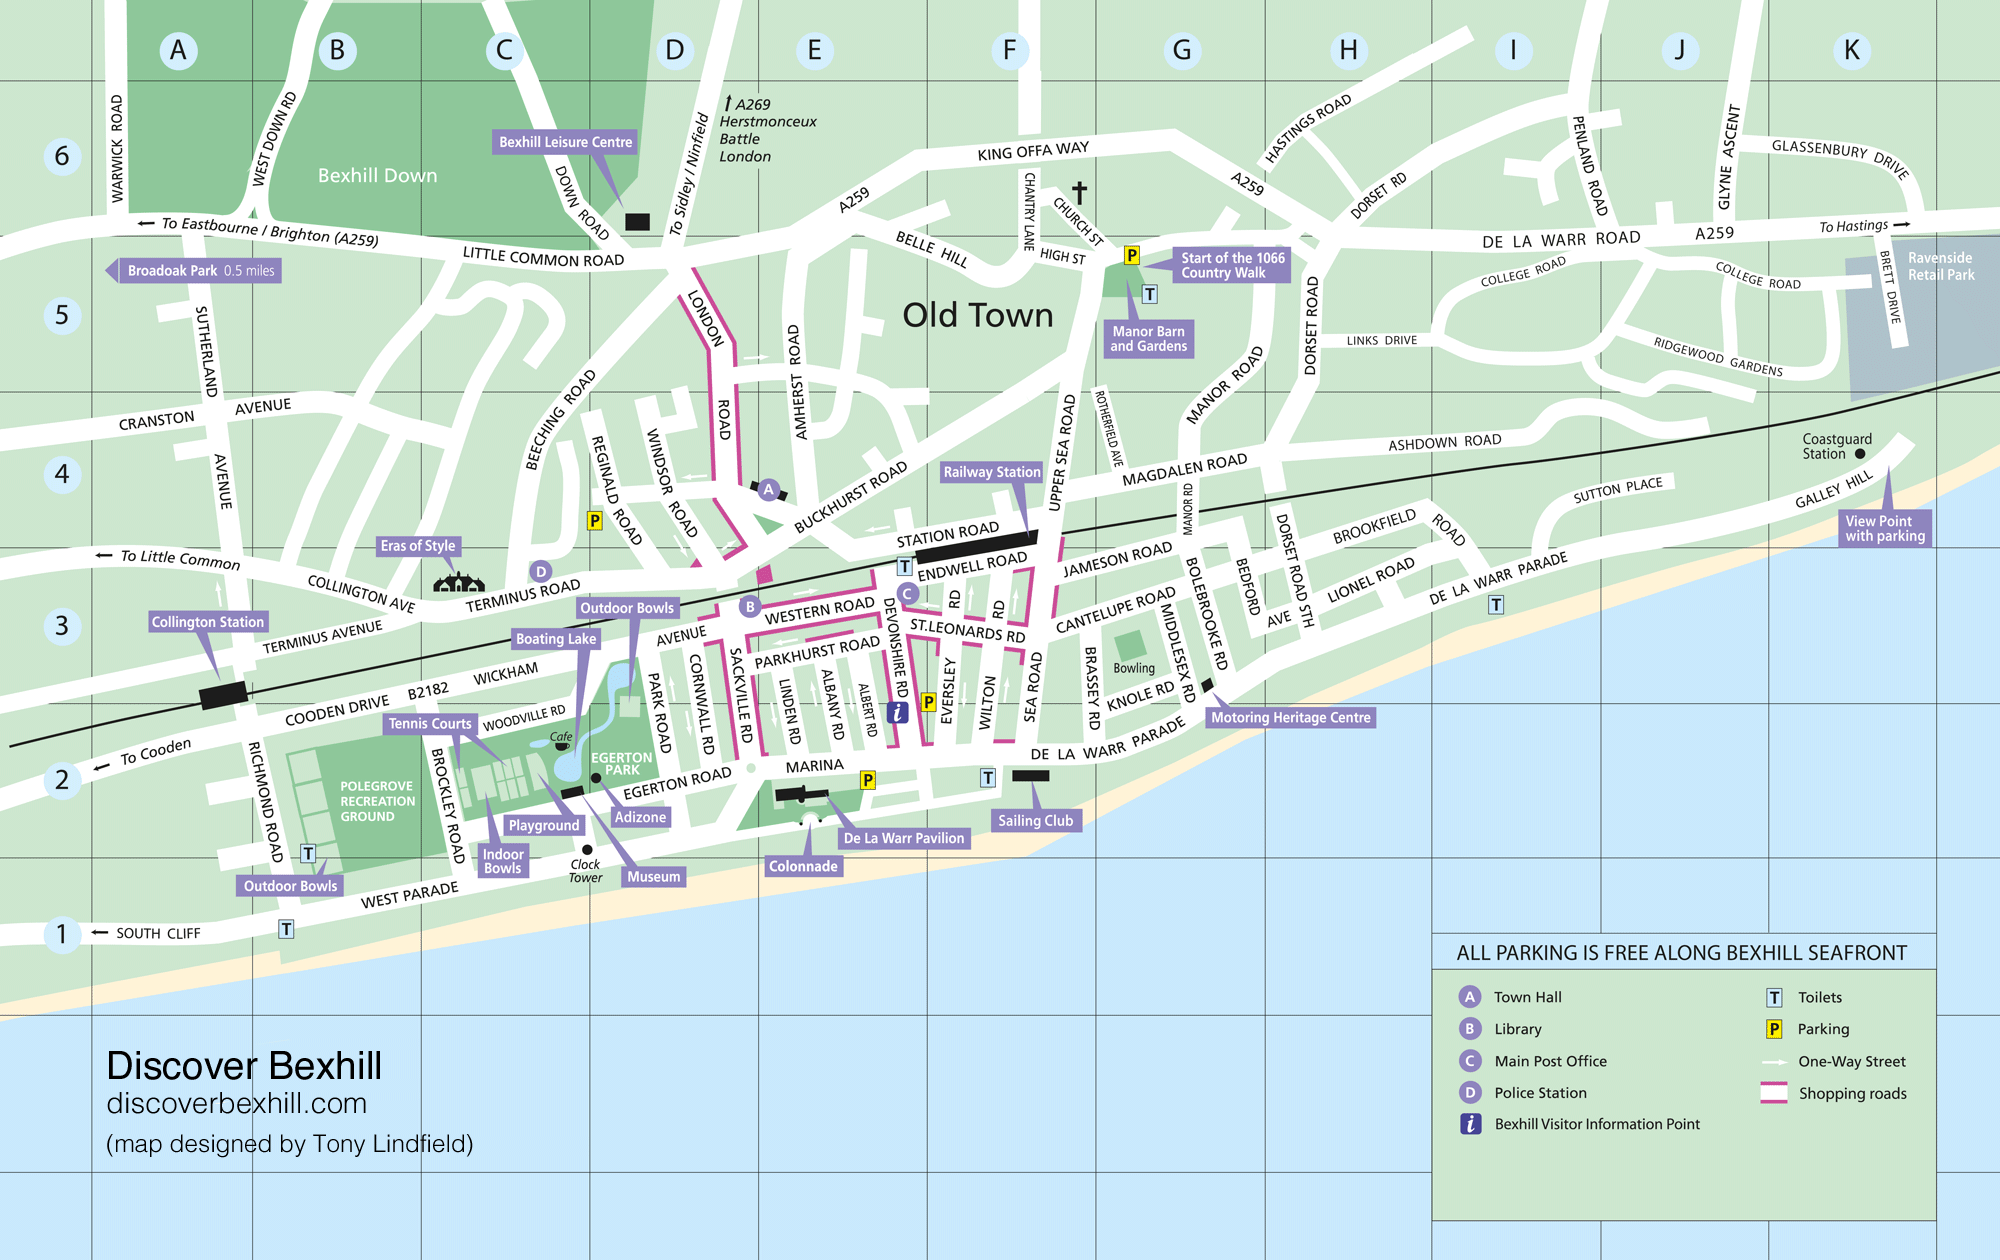 Map of Bexhill